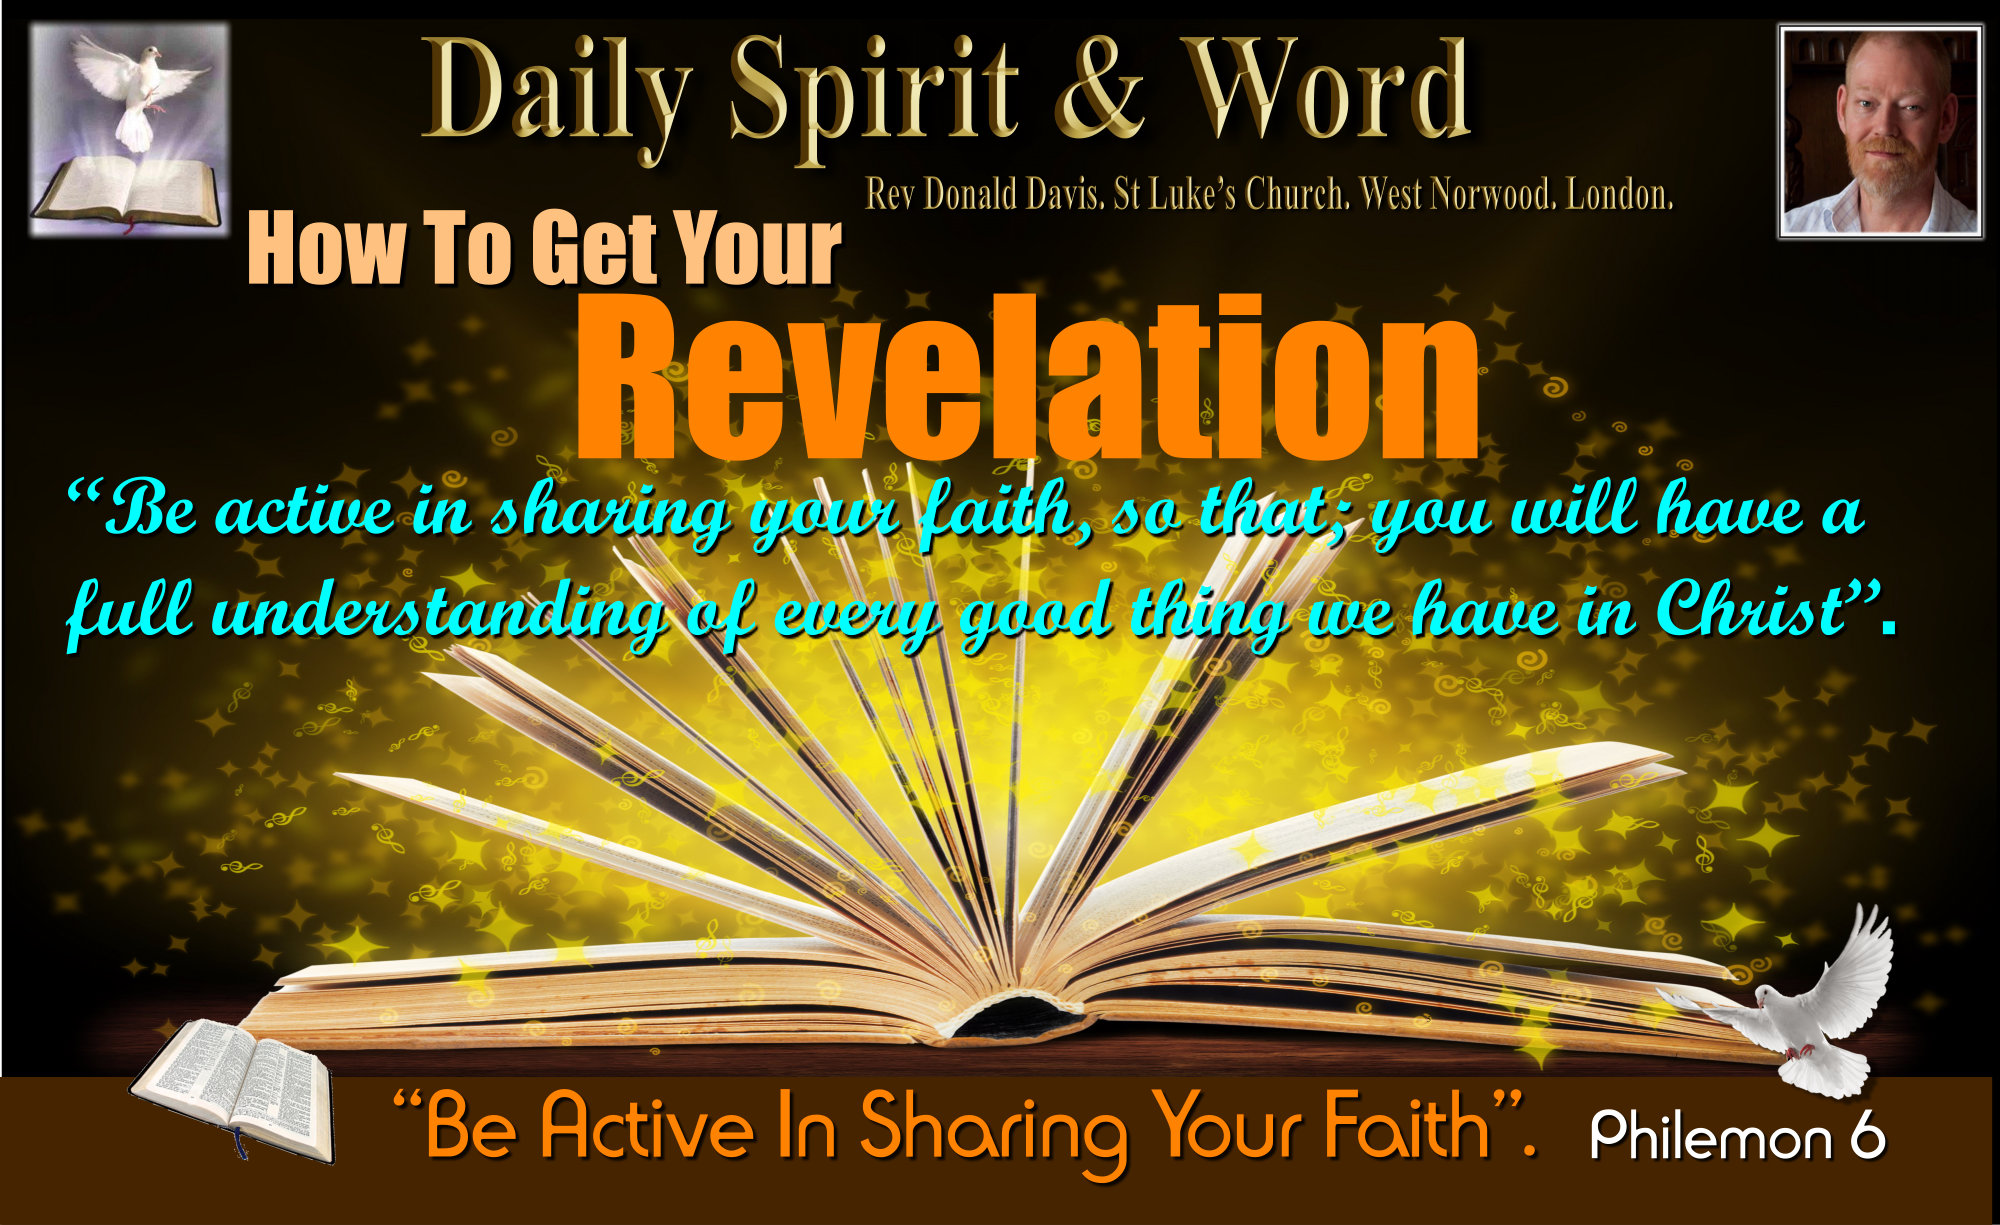 Be active in sharing your faith